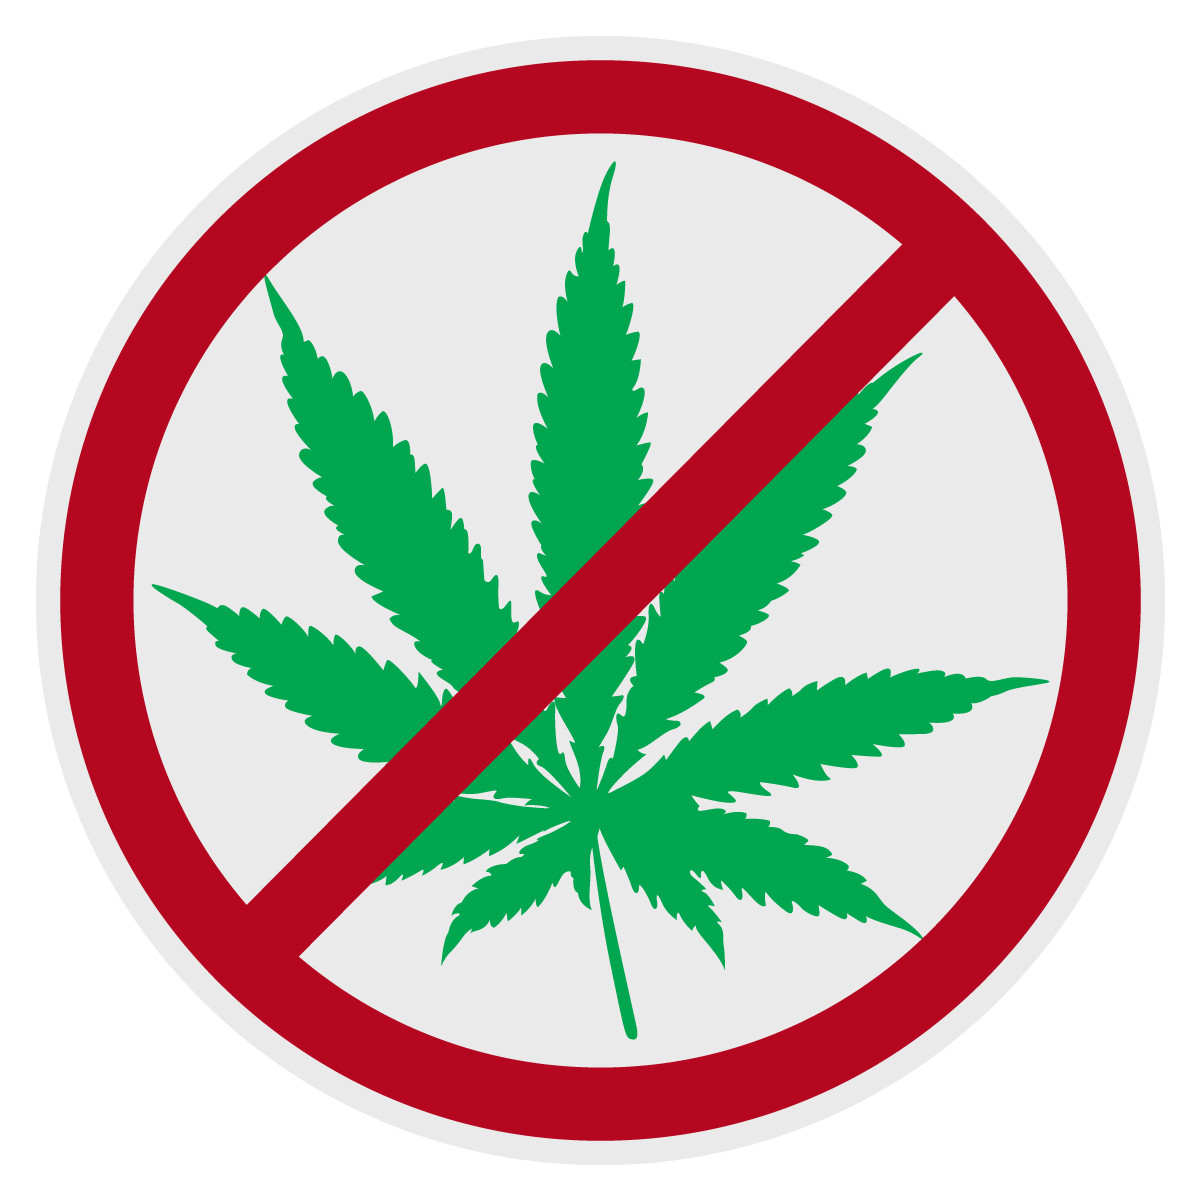 marijuana and the illogical pattern of law enforcement Bjs: bureau of justice statistics drugs and crime facts drugs & crime facts this site summarizes us statistics about drug-related crimes, law enforcement, courts, and.